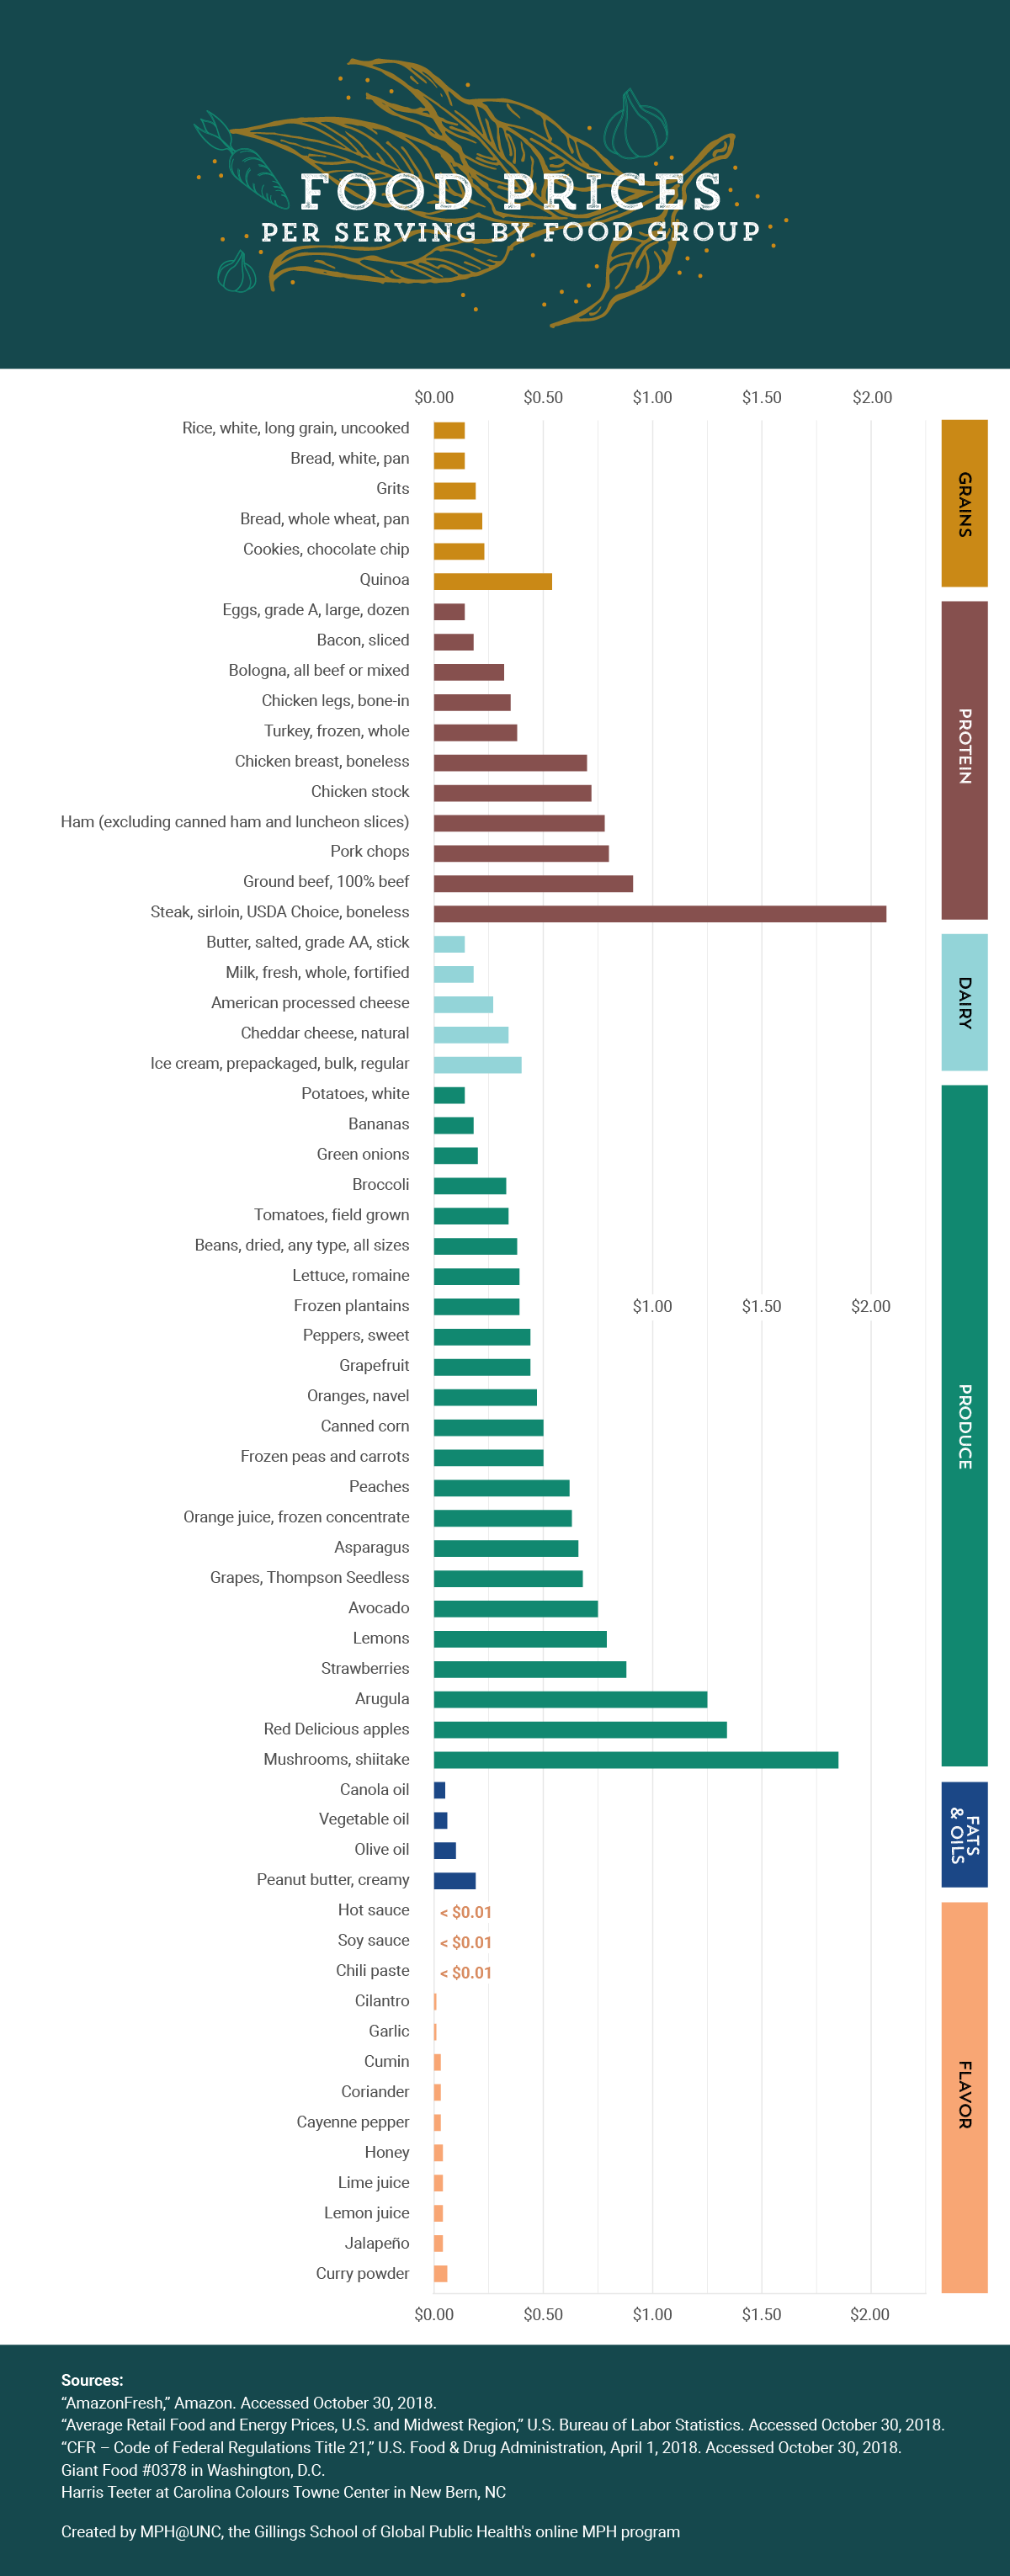 Bar chart comparing food prices per serving by food group.